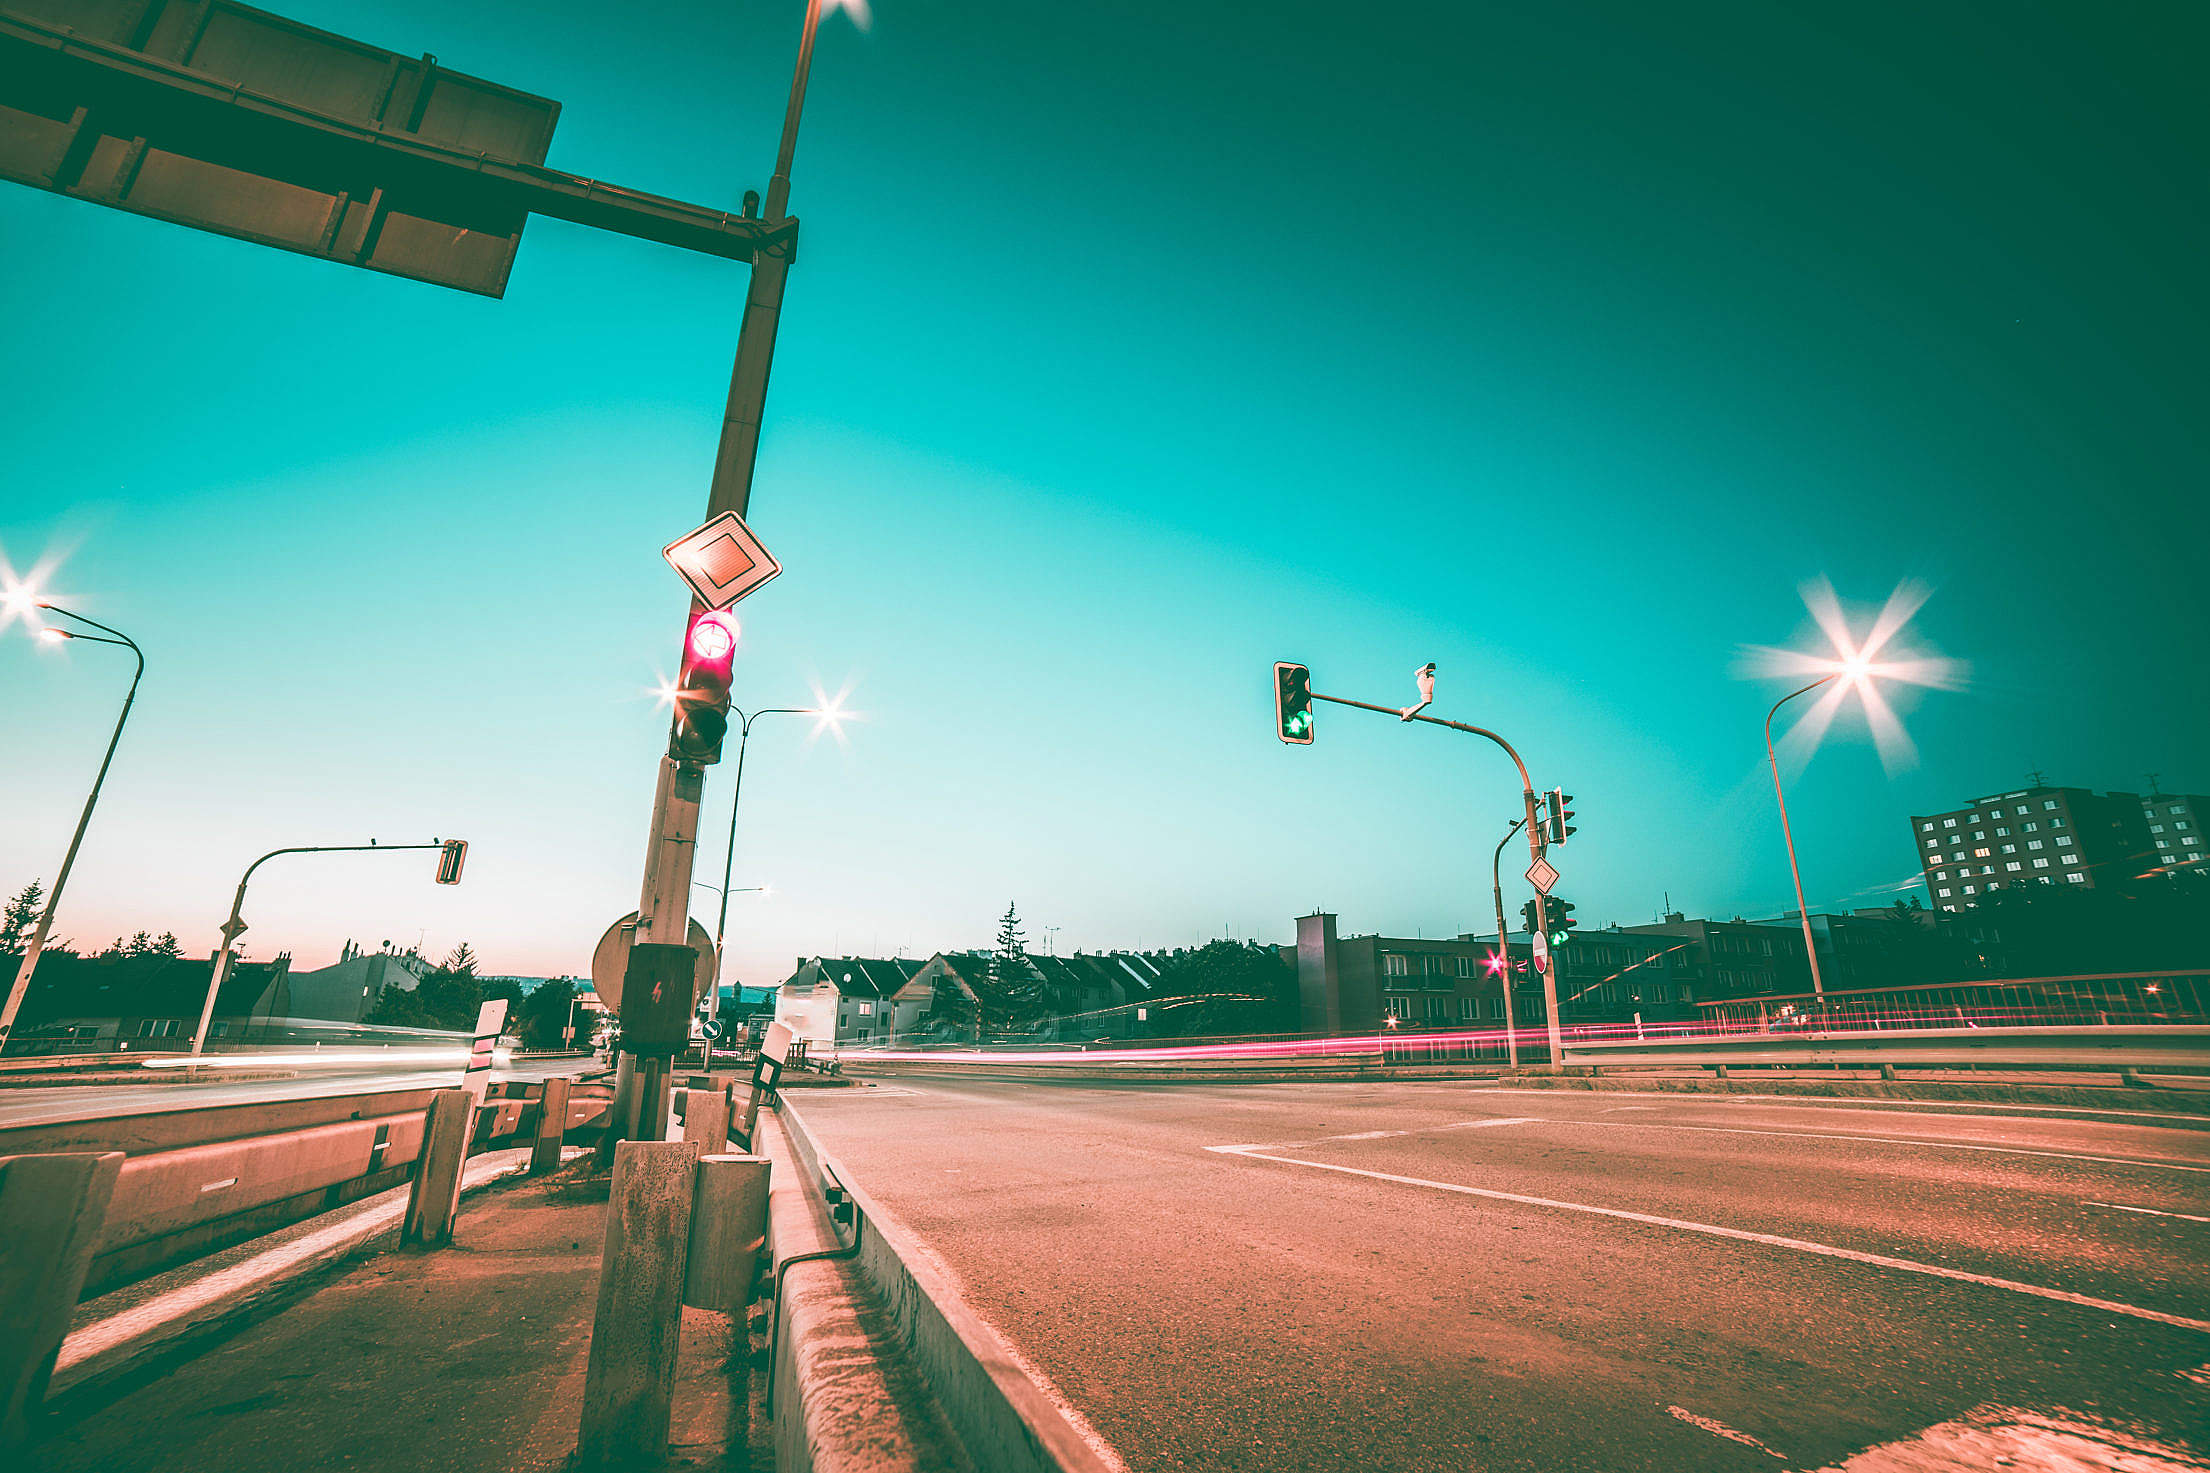 Road Intersection and Traffic Lights #2 Free Stock Photo